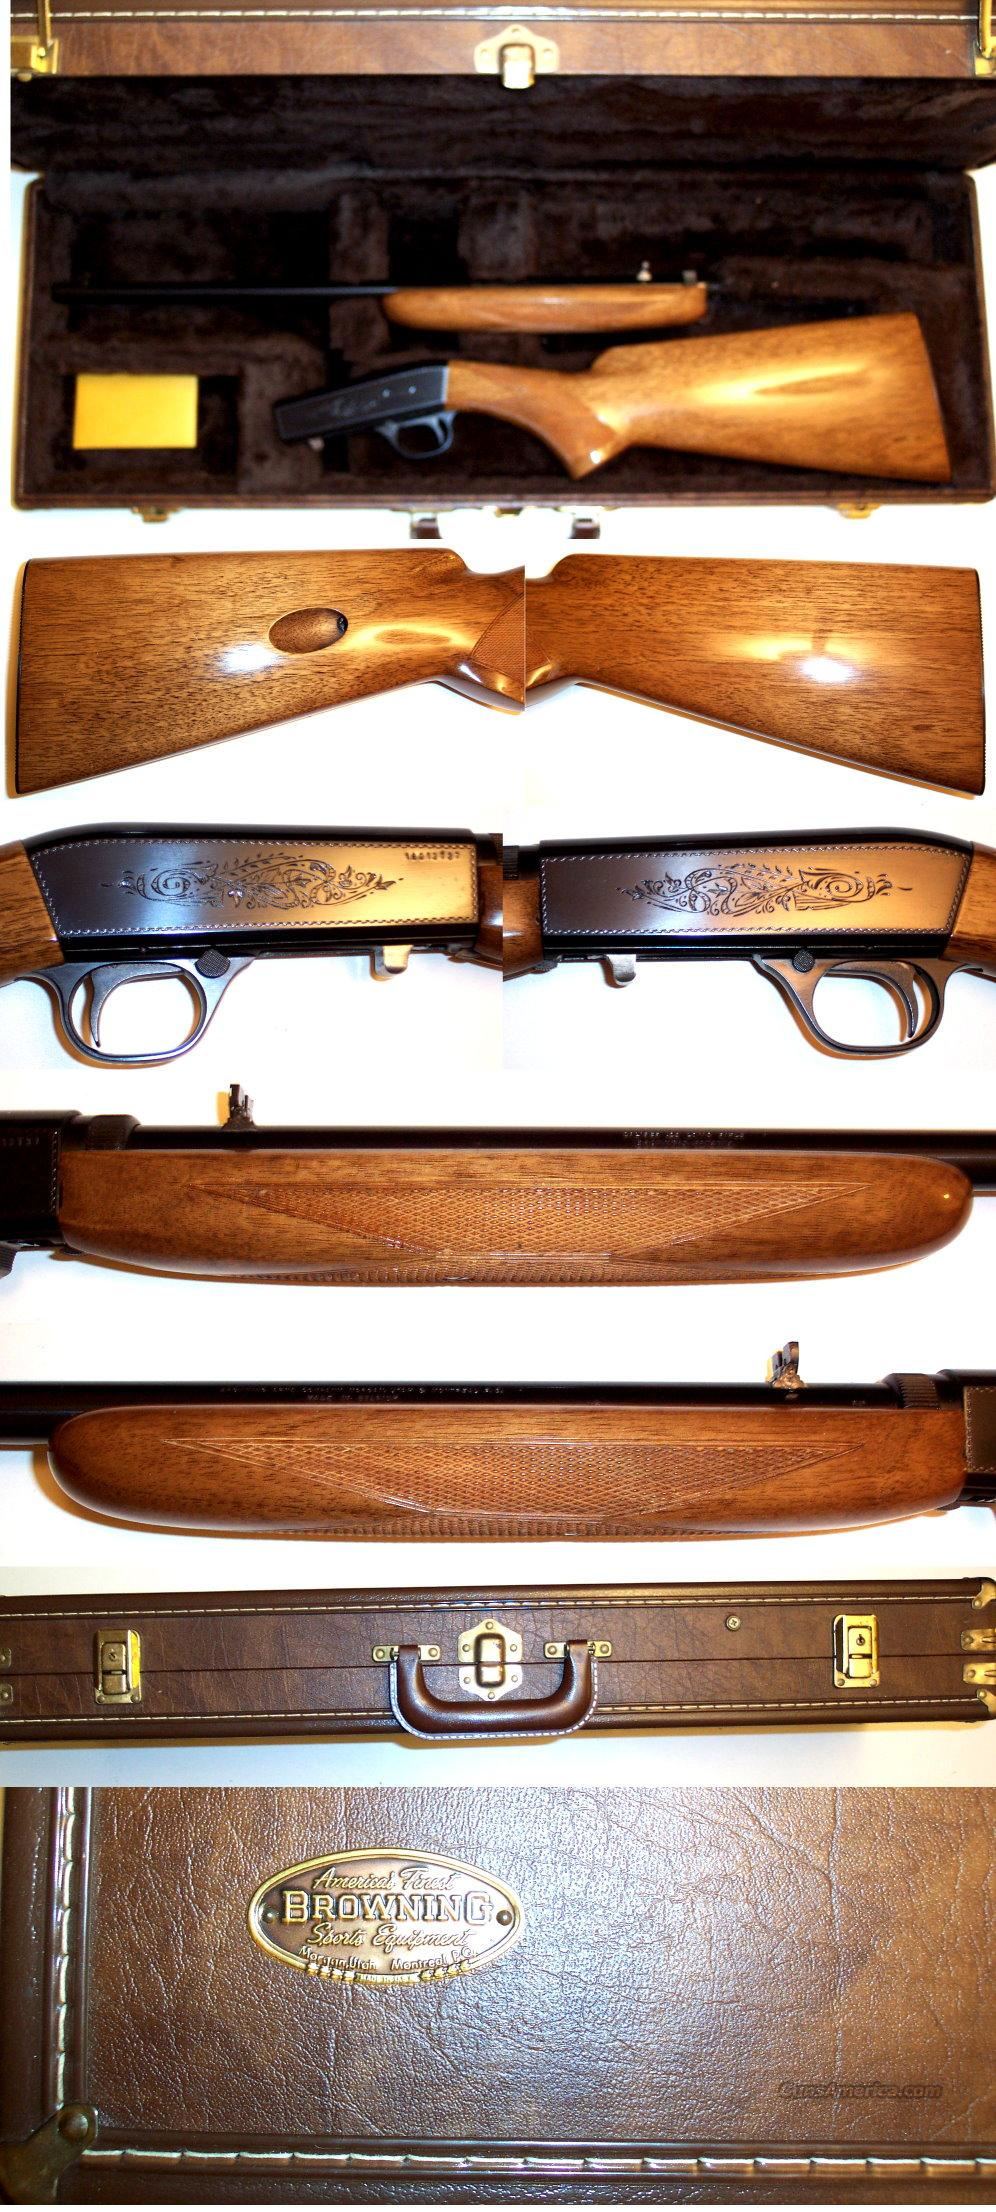 '73 Belgium Browning 22 auto near new in case  Guns > Rifles > Browning Rifles > Semi Auto > Hunting